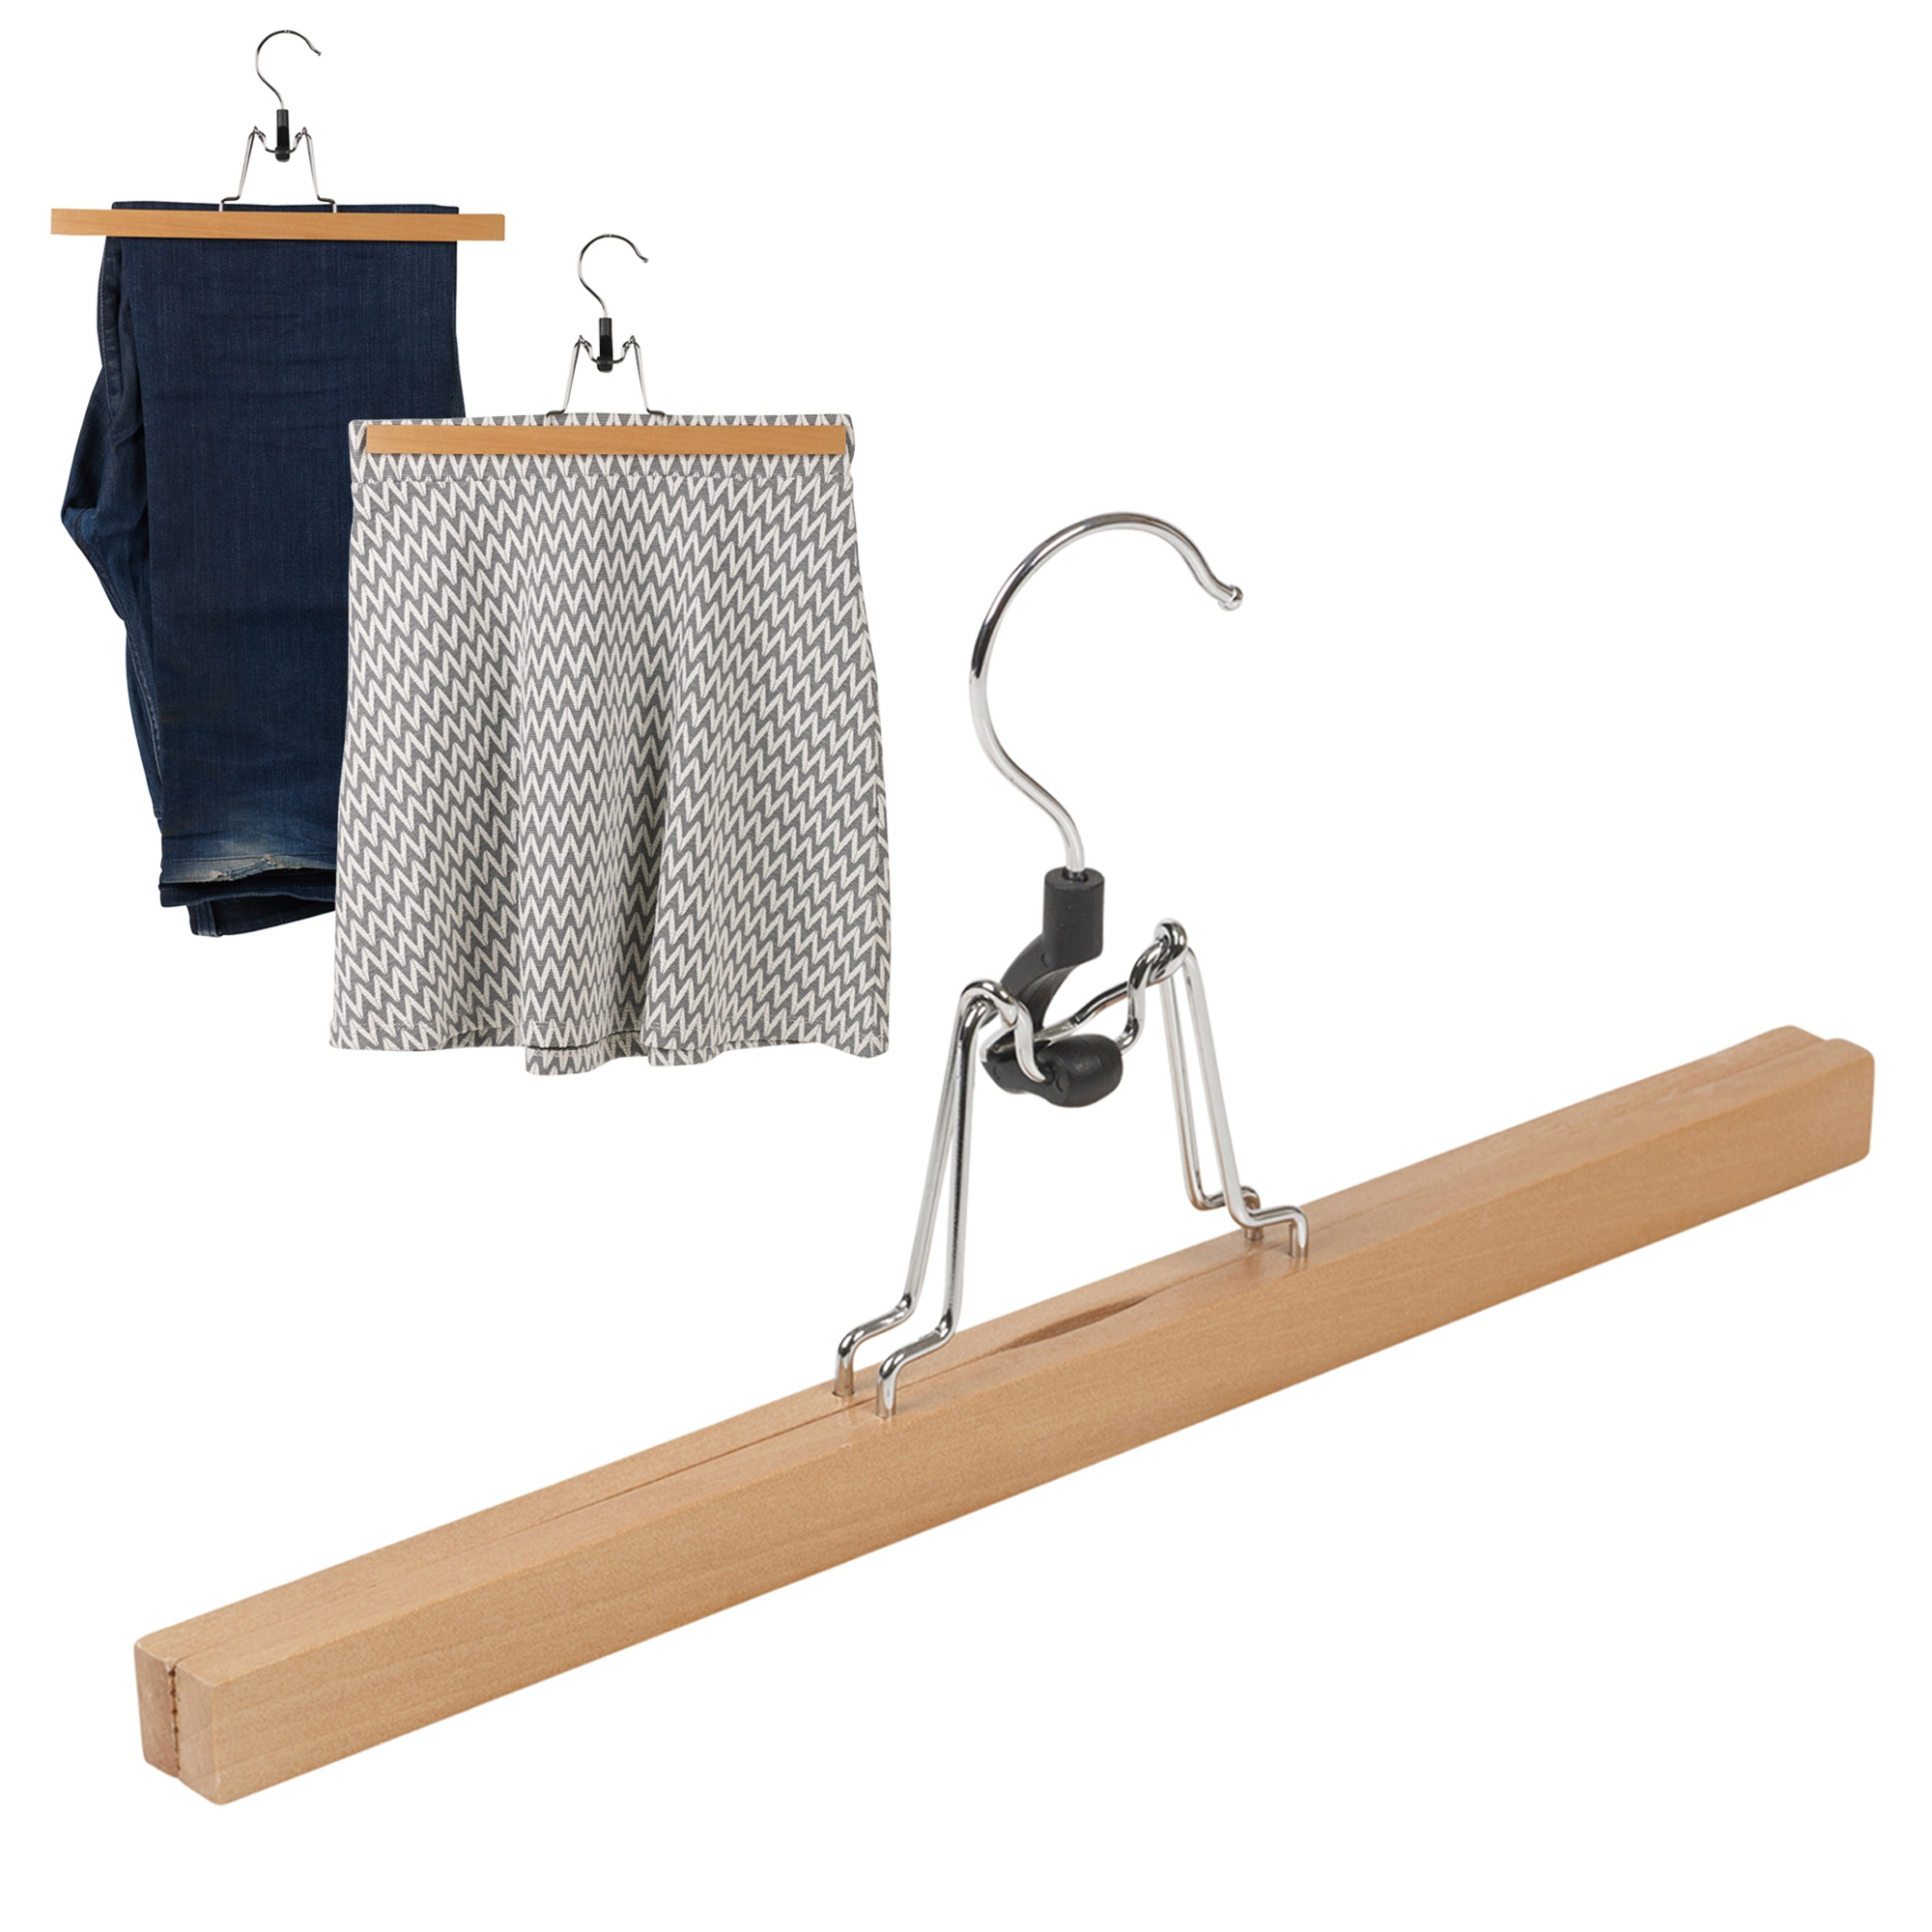 12 natural wood wooden clothes trousers skirt clip clamp hangers 33cm storage ebay. Black Bedroom Furniture Sets. Home Design Ideas